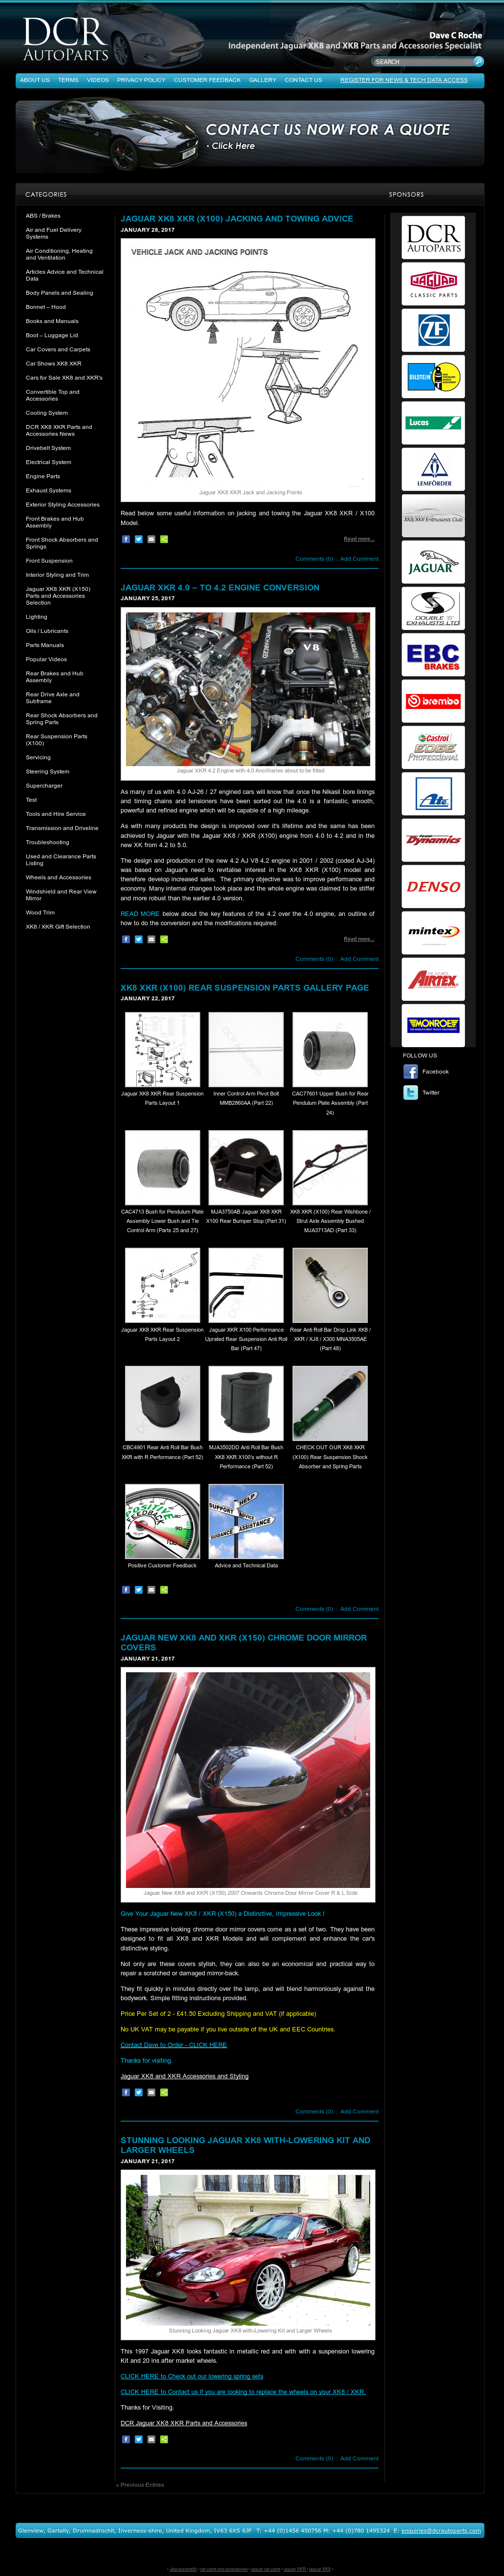 Jaguar Xk8 And Xkr Parts And Accessories - From Dave Roche